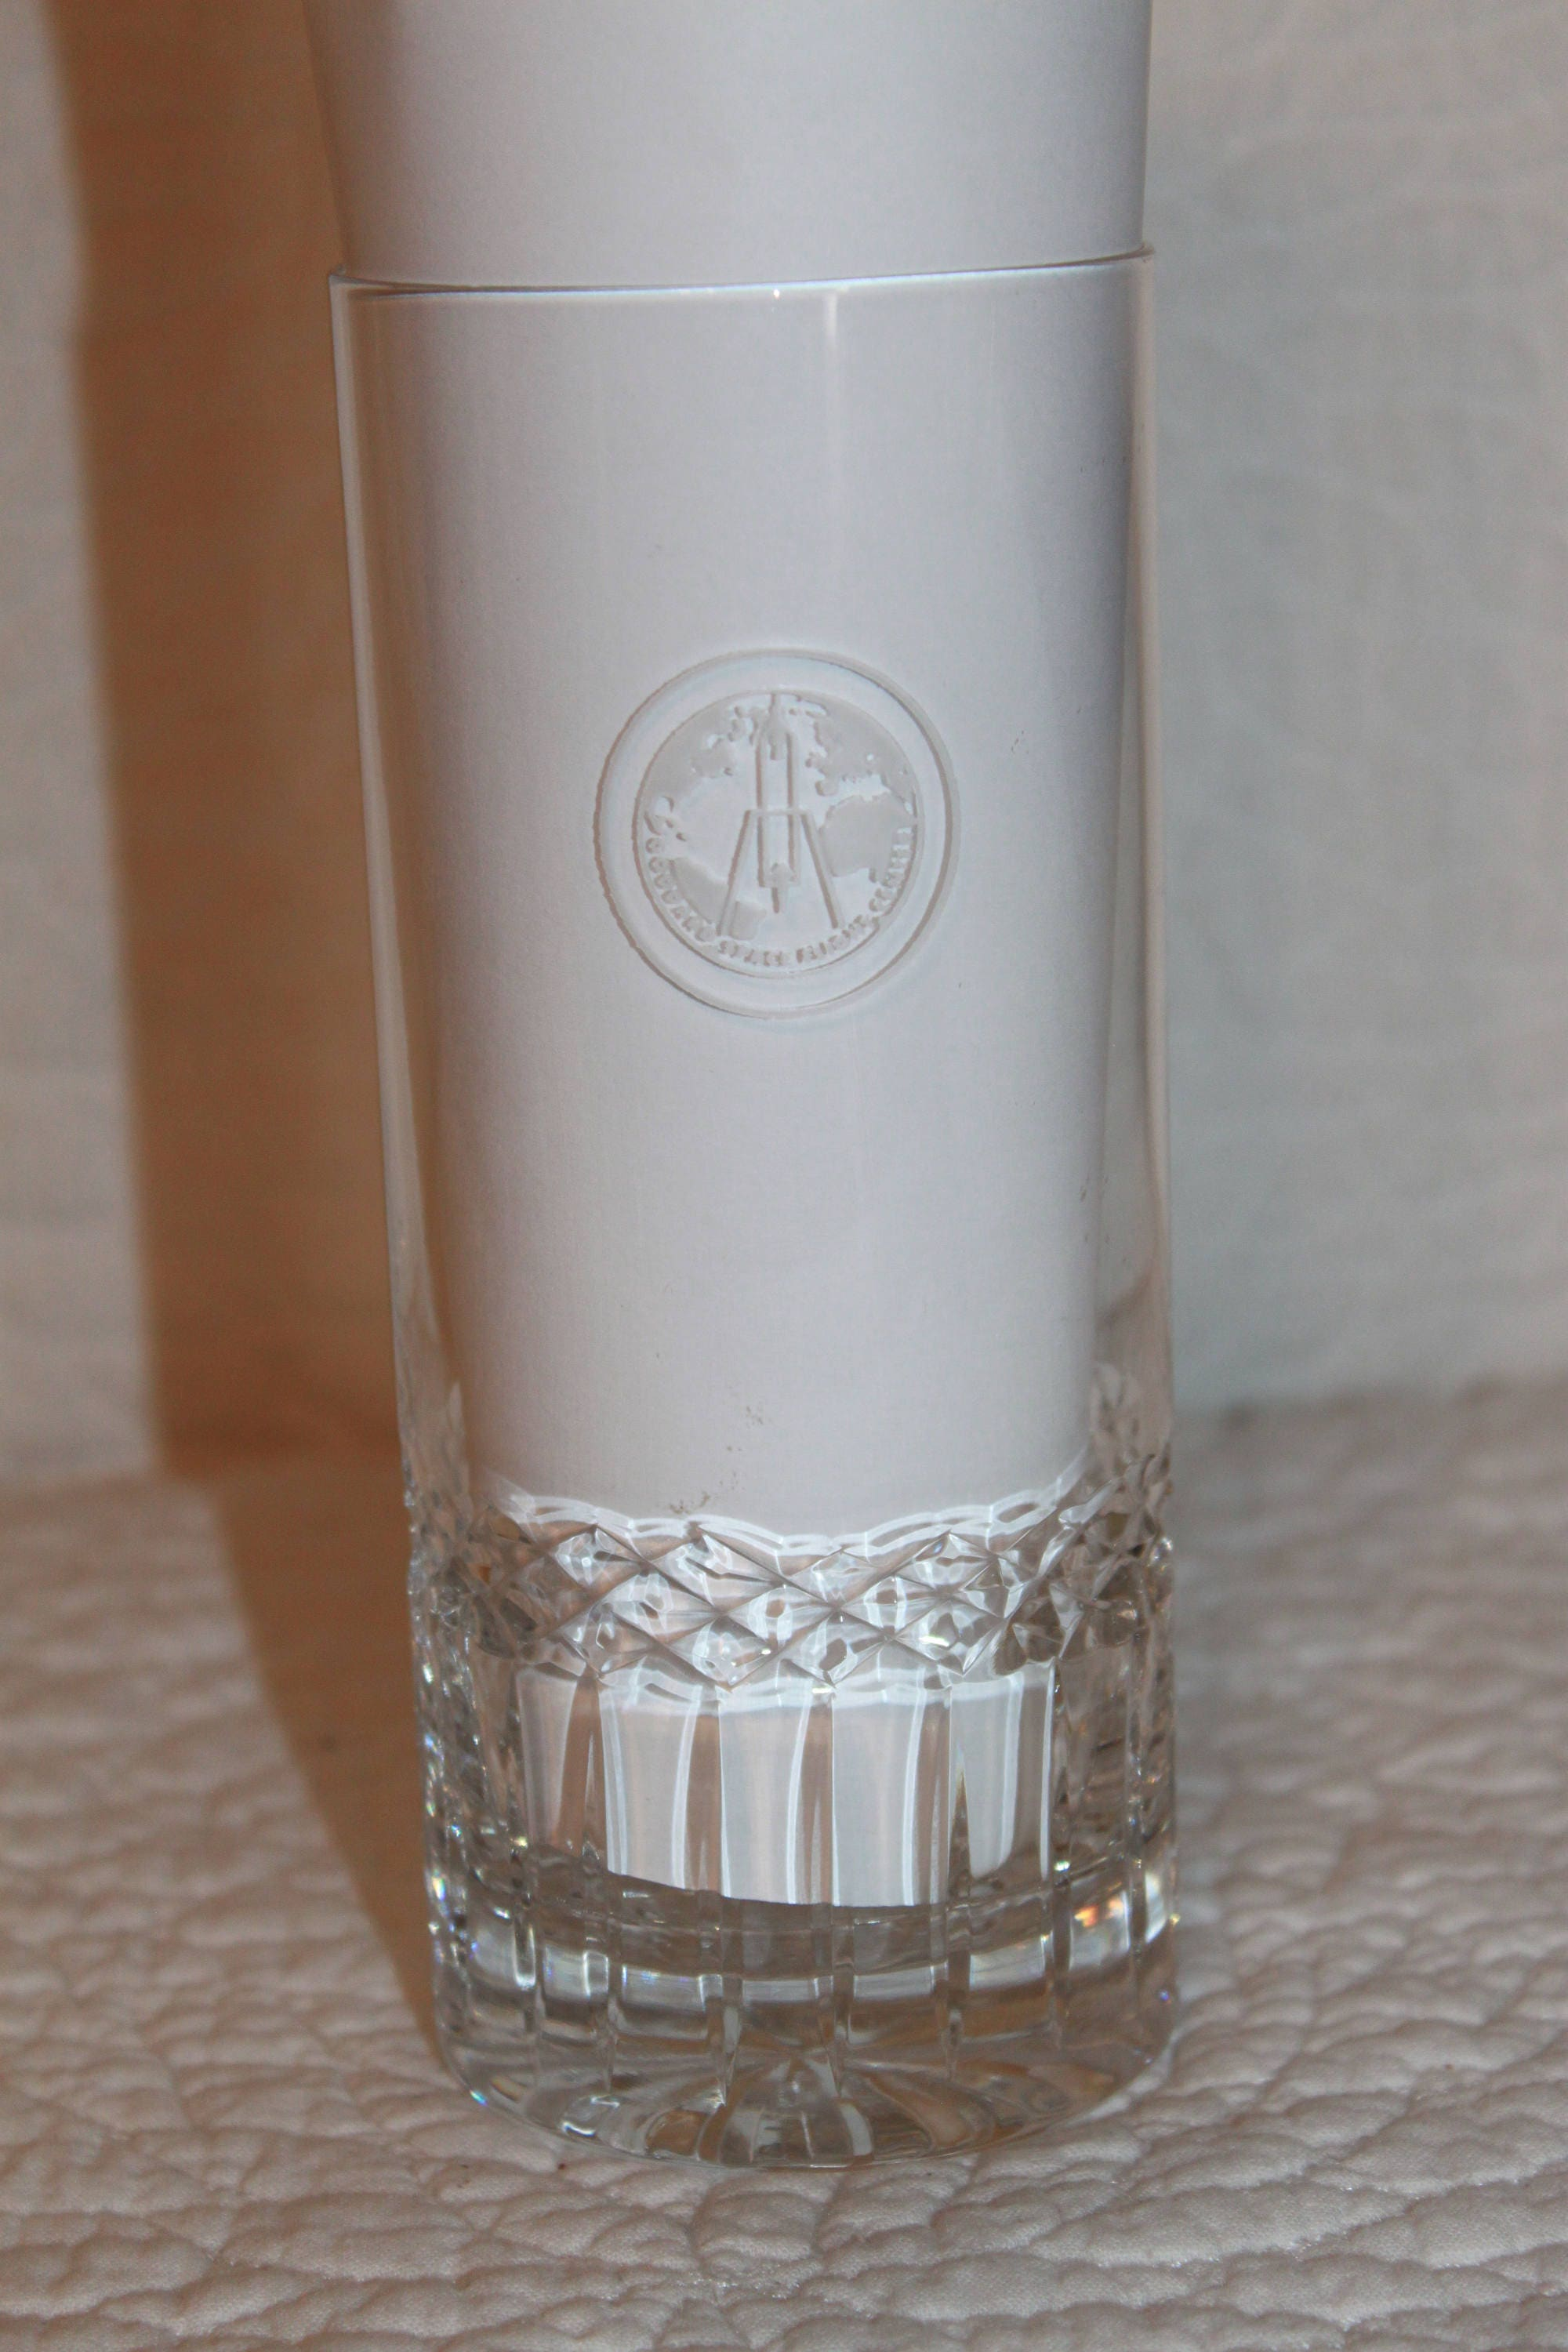 K4 Goddard Space Flight Center Lead Crystal Etched and ...